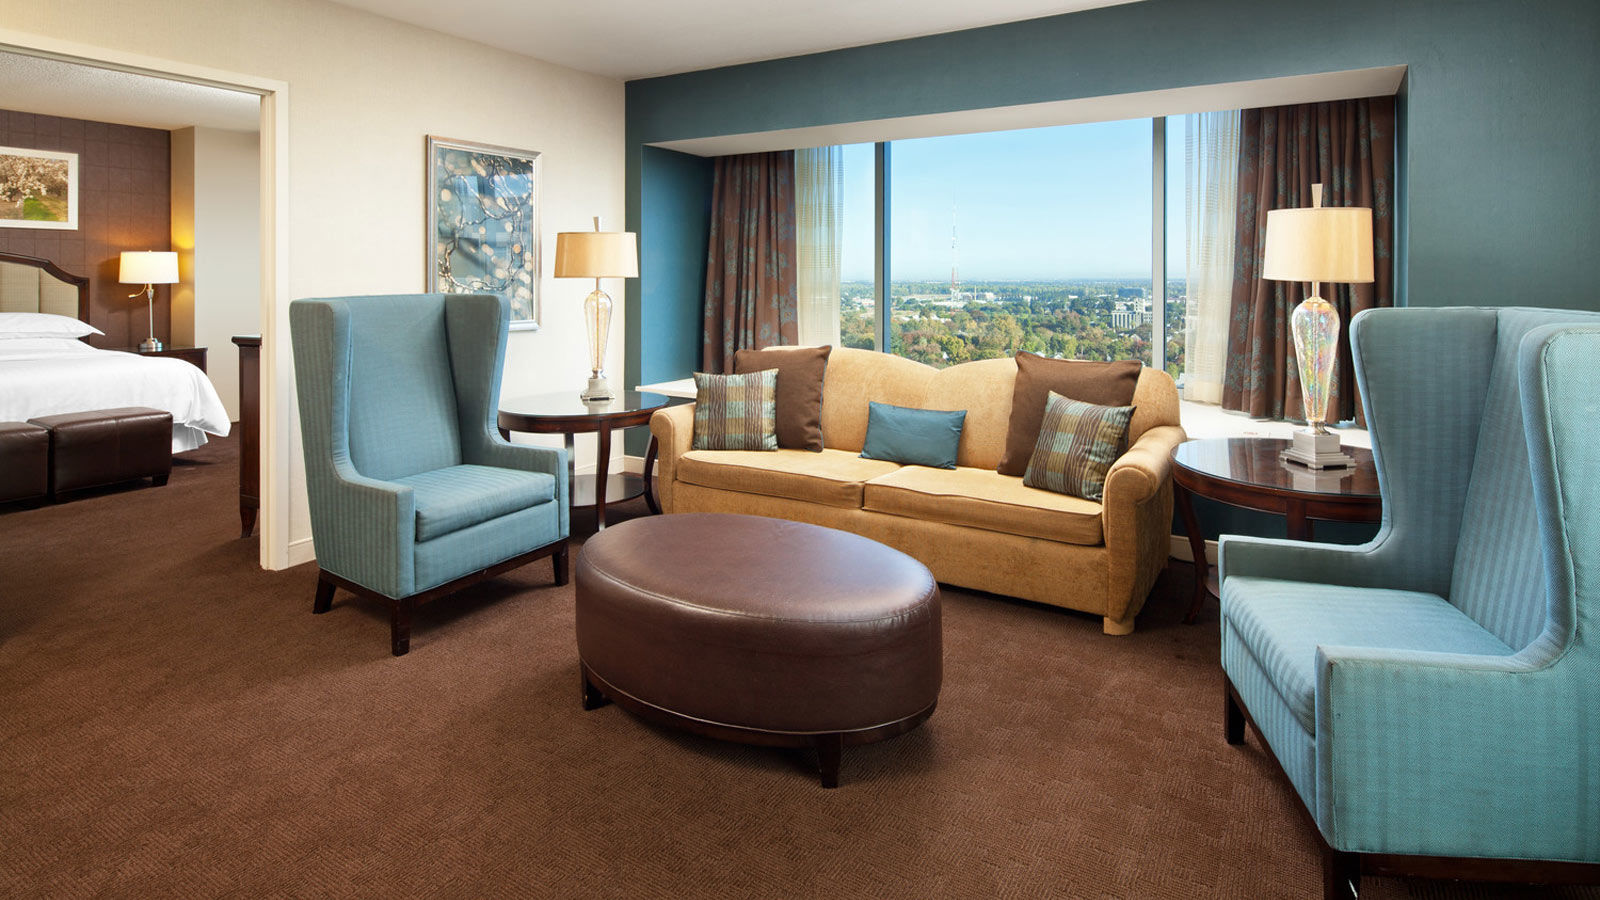 Sheraton Grand Sacramento Hotel - Bay Window Suite